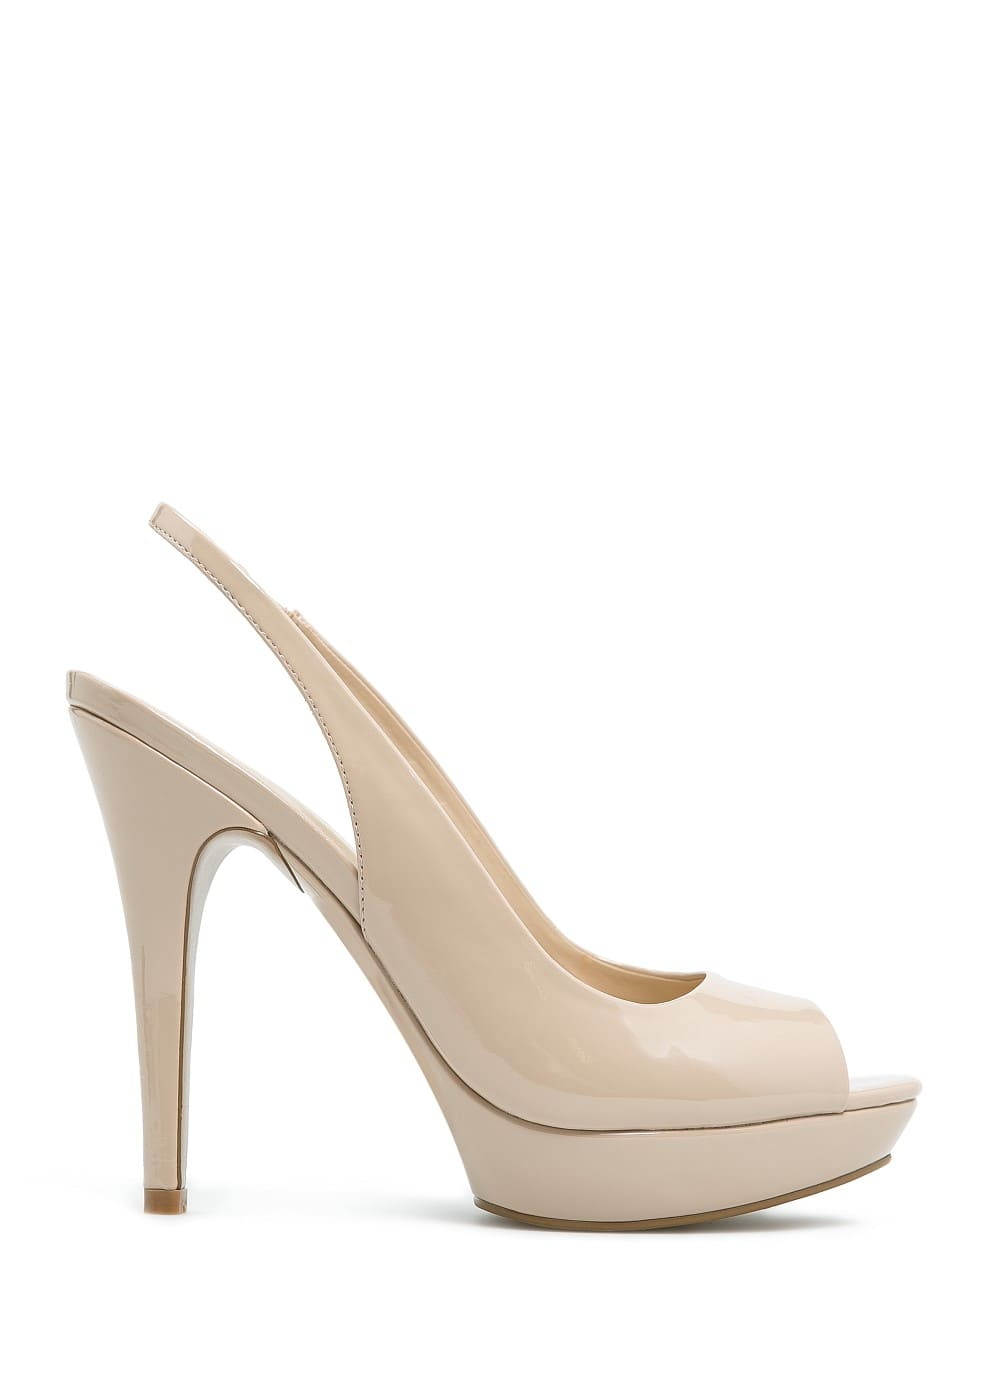 Patent sling back peep-toe shoes